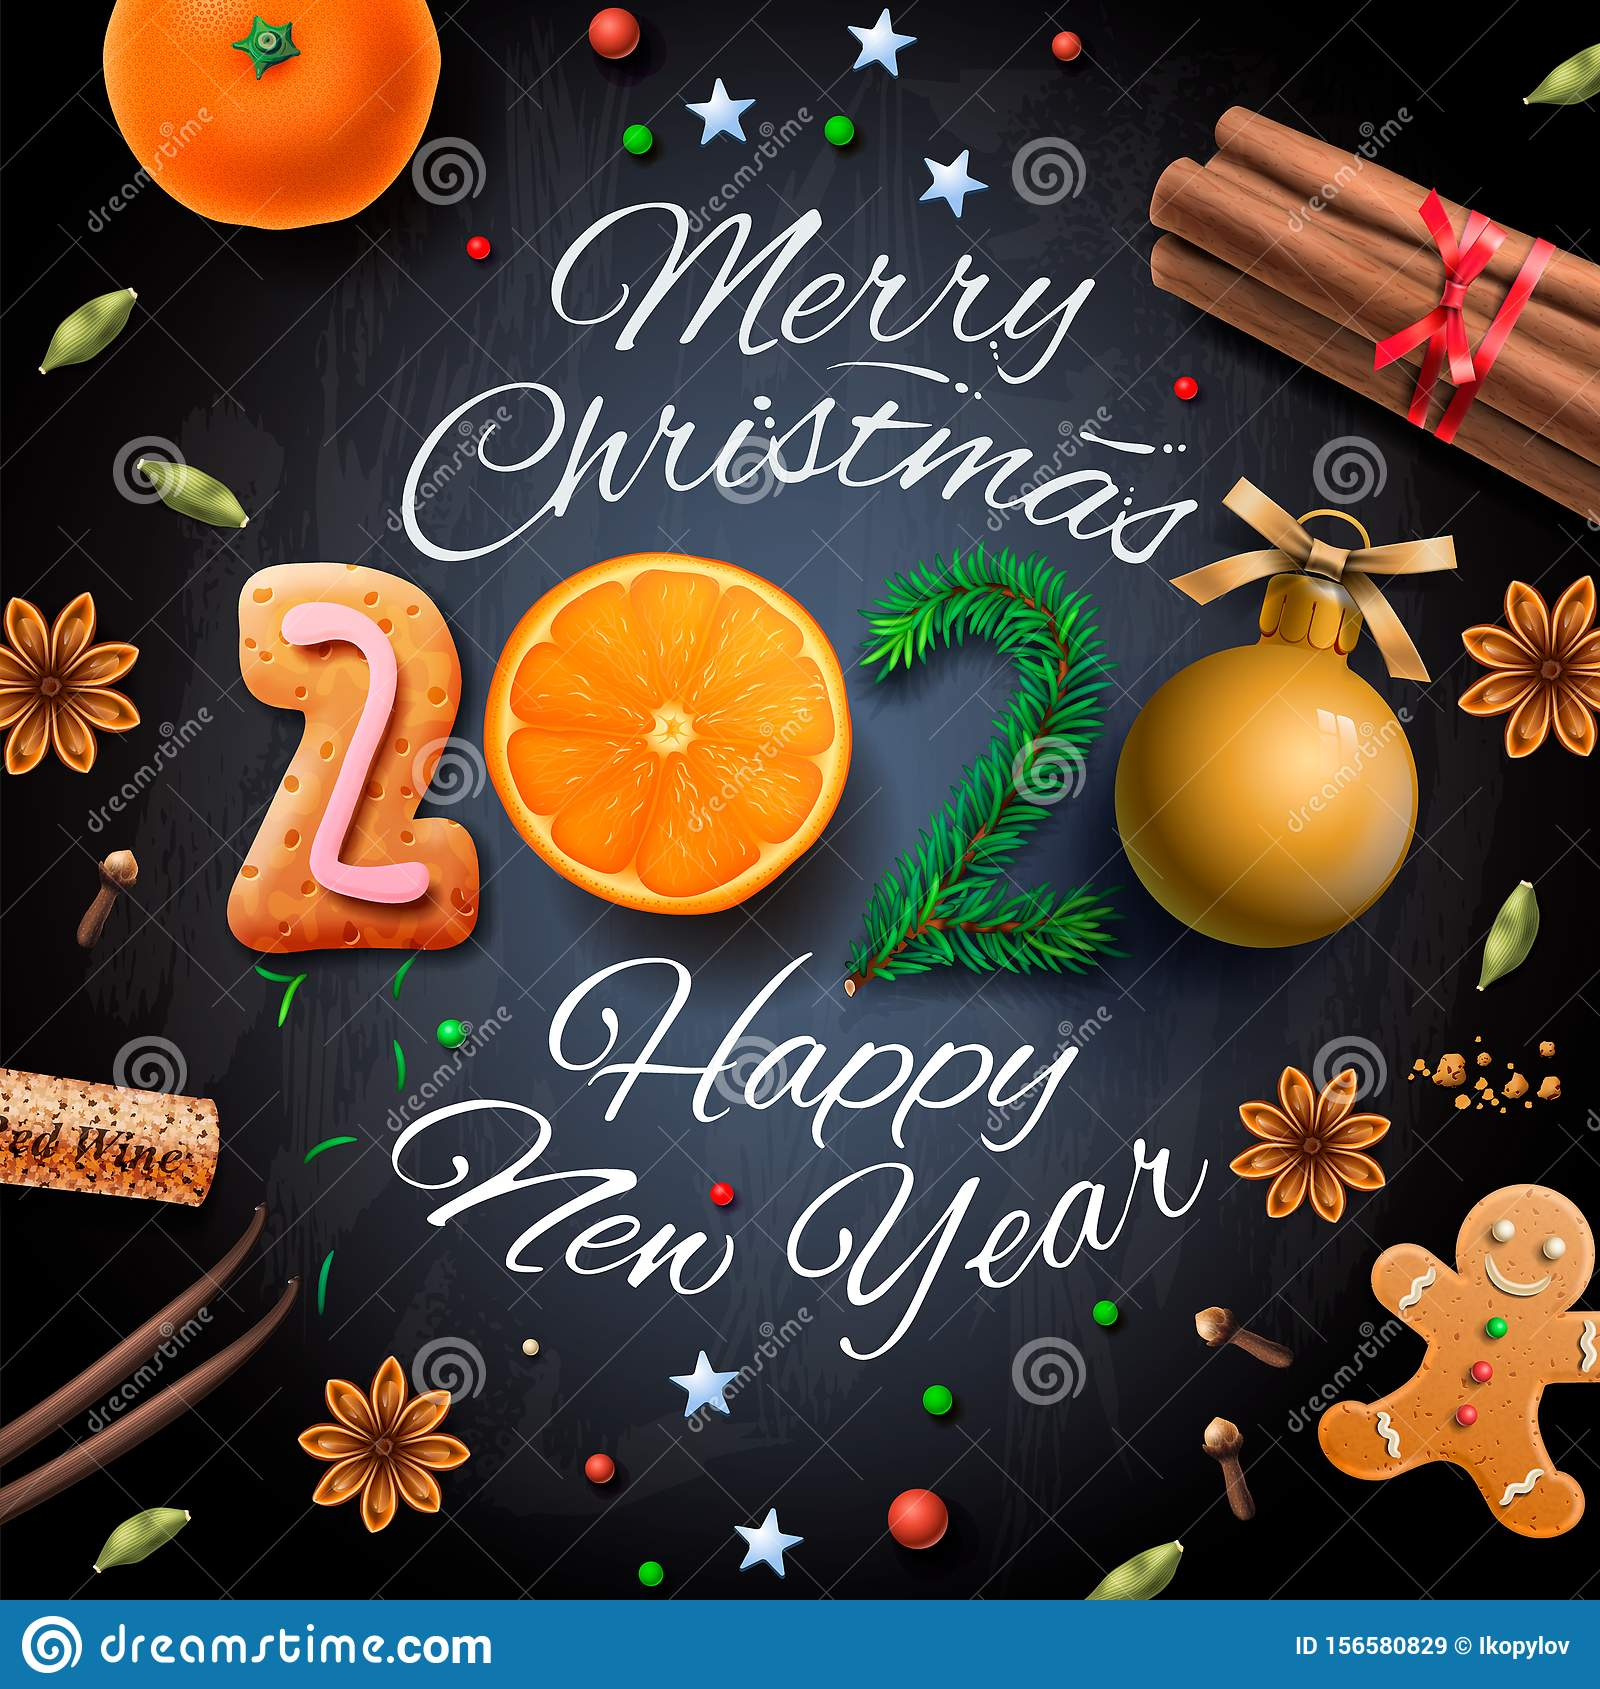 Christmas Dinner 2020 Merry Christmas, Happy New Year 2020, Background With Typography